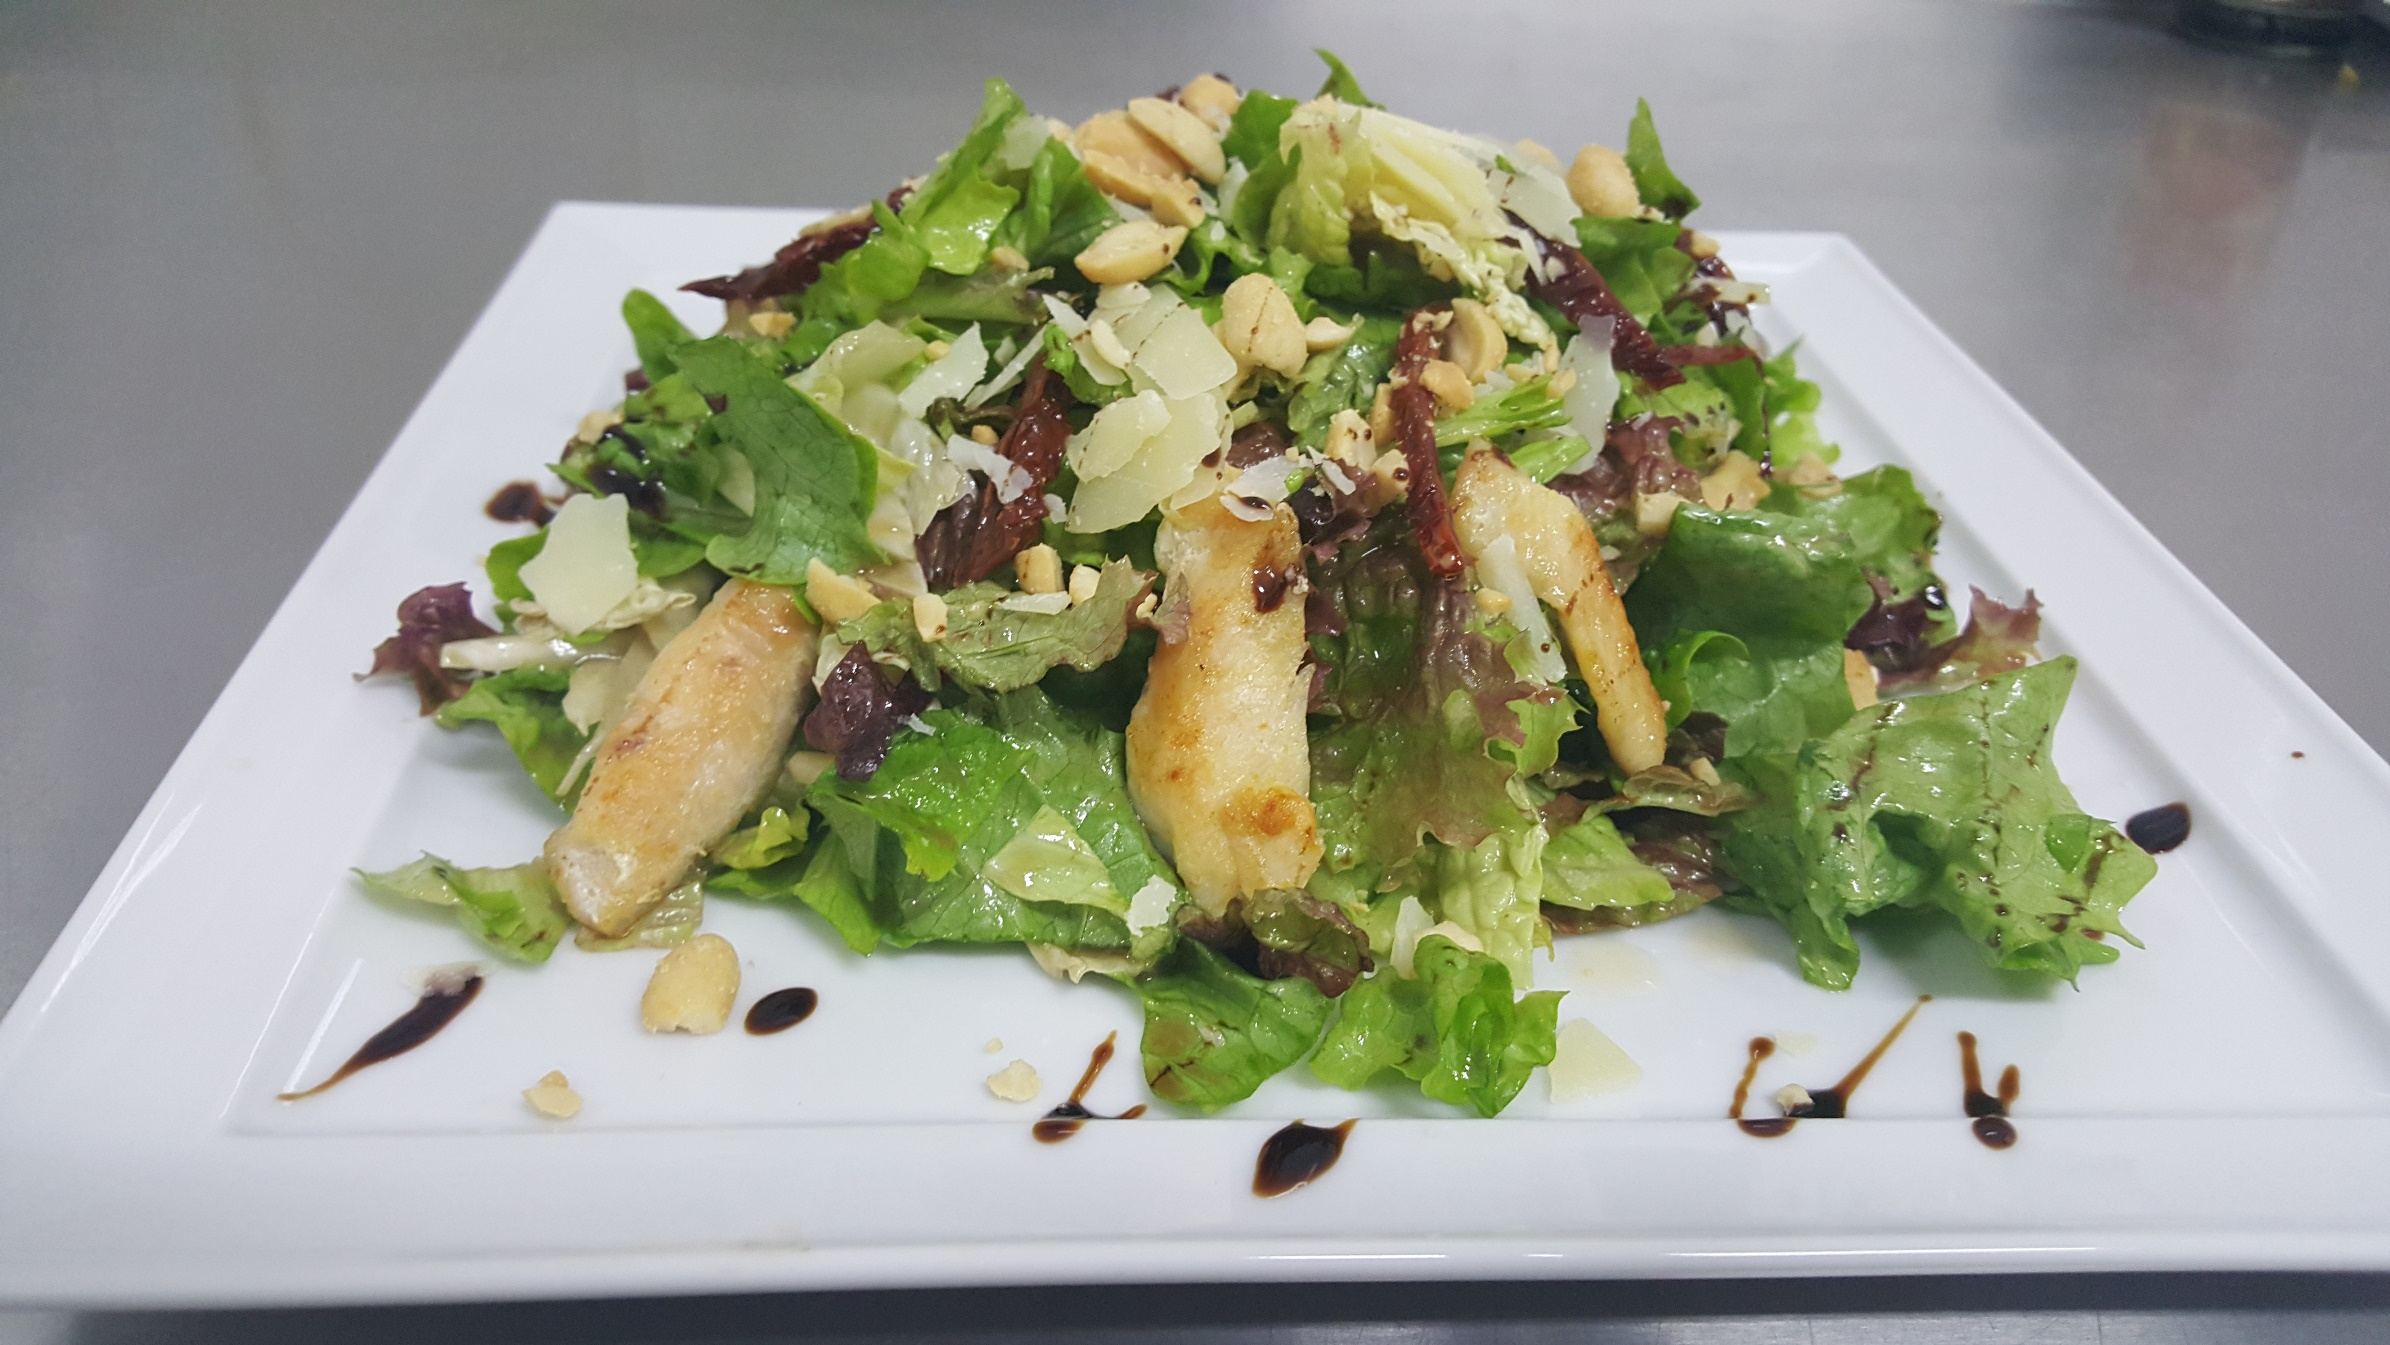 NON-ASIAN SALAD II - green and red lettuces, napa cabbage, seared chicken fillet, nuts, sun-dried tomatoes and grated parmesan, poured with honey-mustard dressing